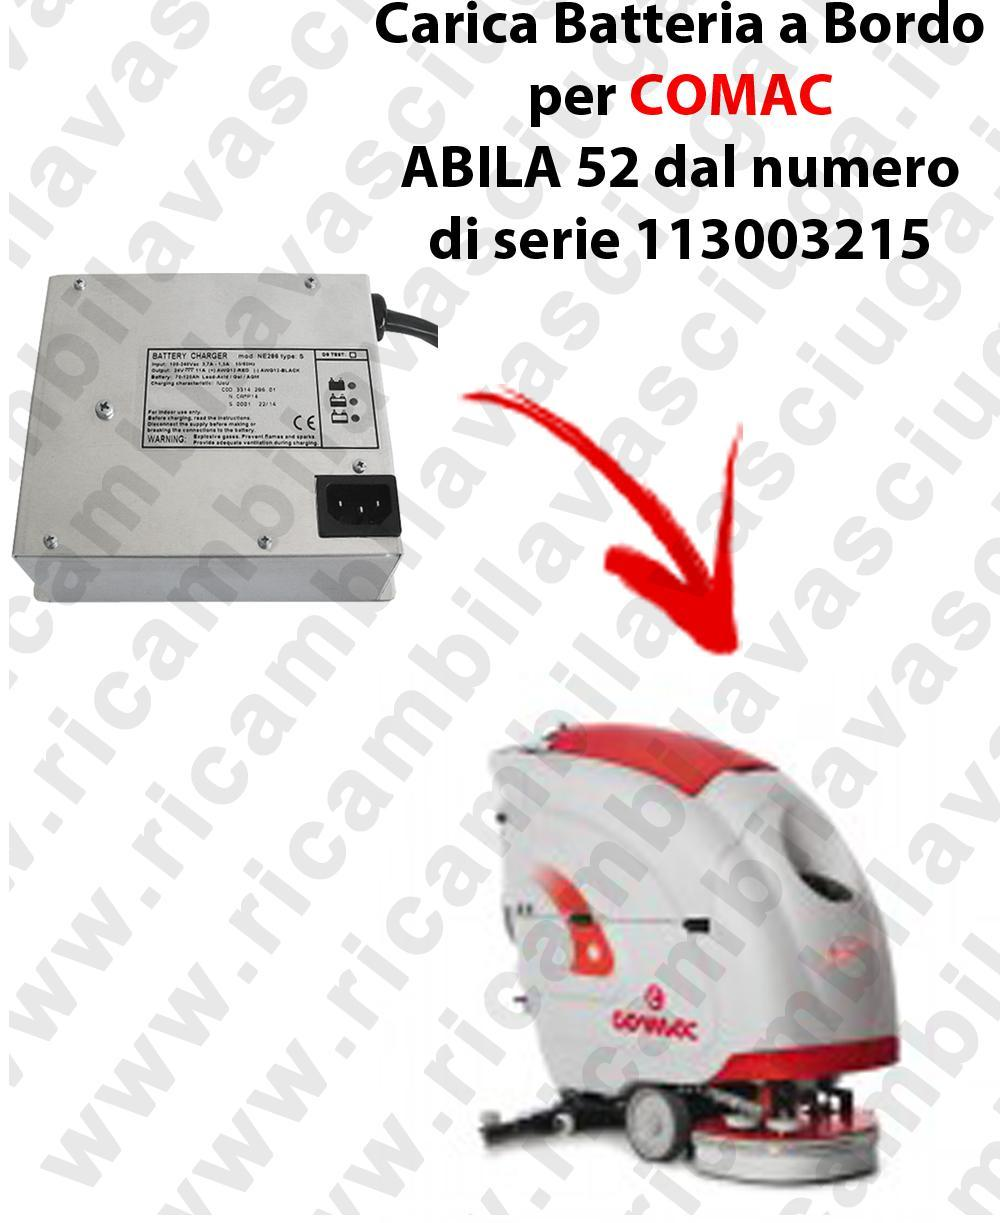 Onboard Battery Charger for scrubber dryer COMAC ABILA 52 from serial number 113003215-2-2-2